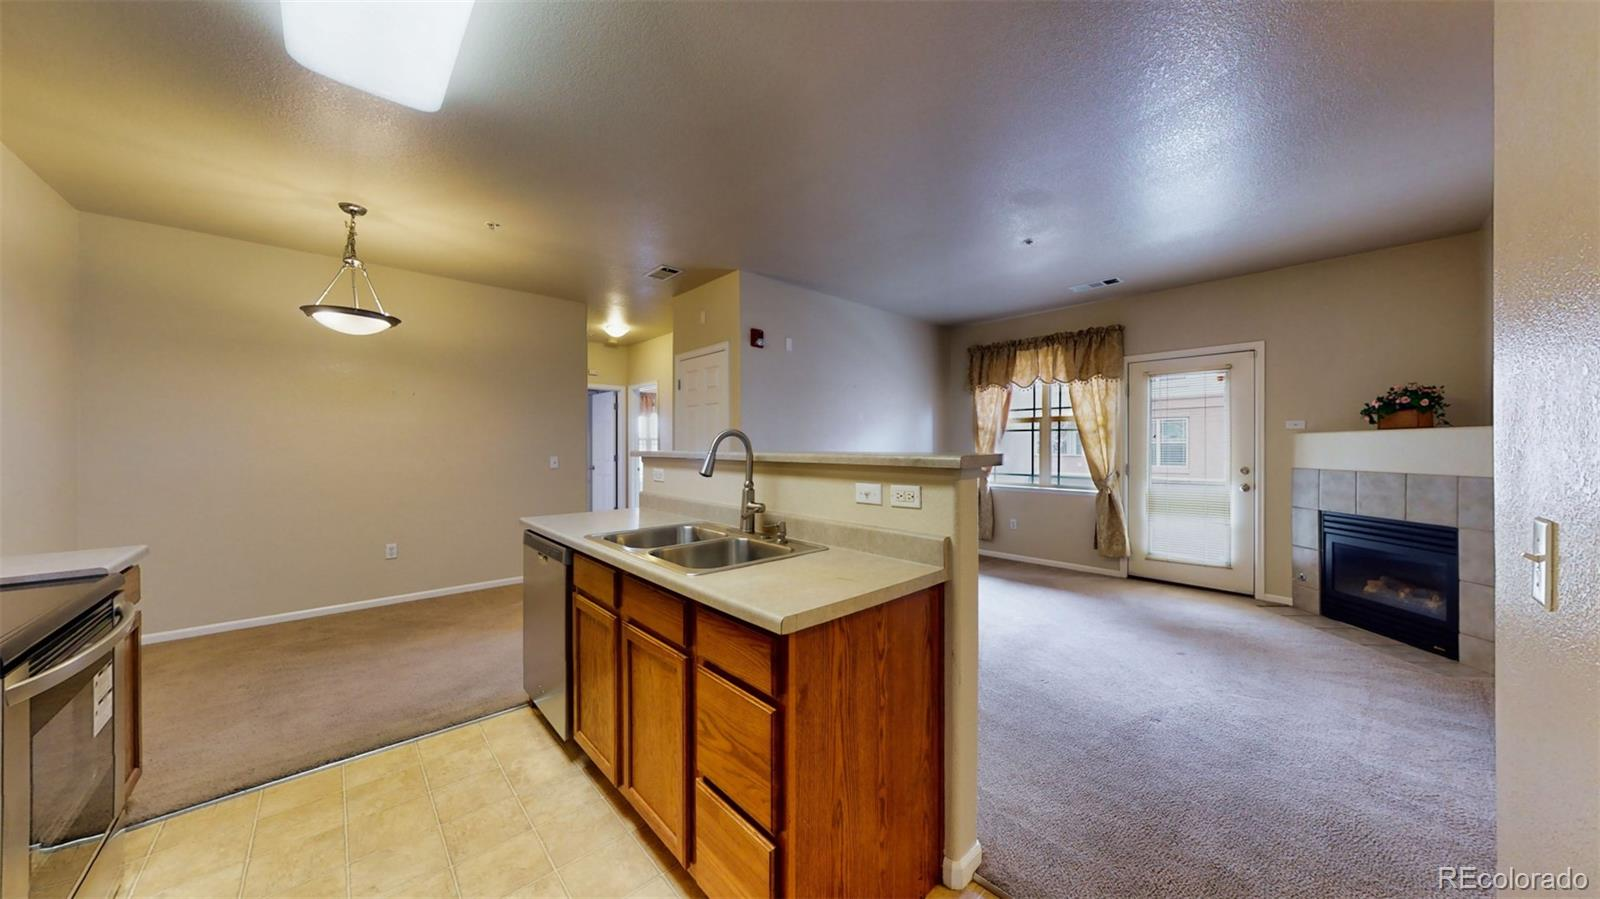 MLS# 3562922 - 3 - 8123 W 51st Place #202, Arvada, CO 80002